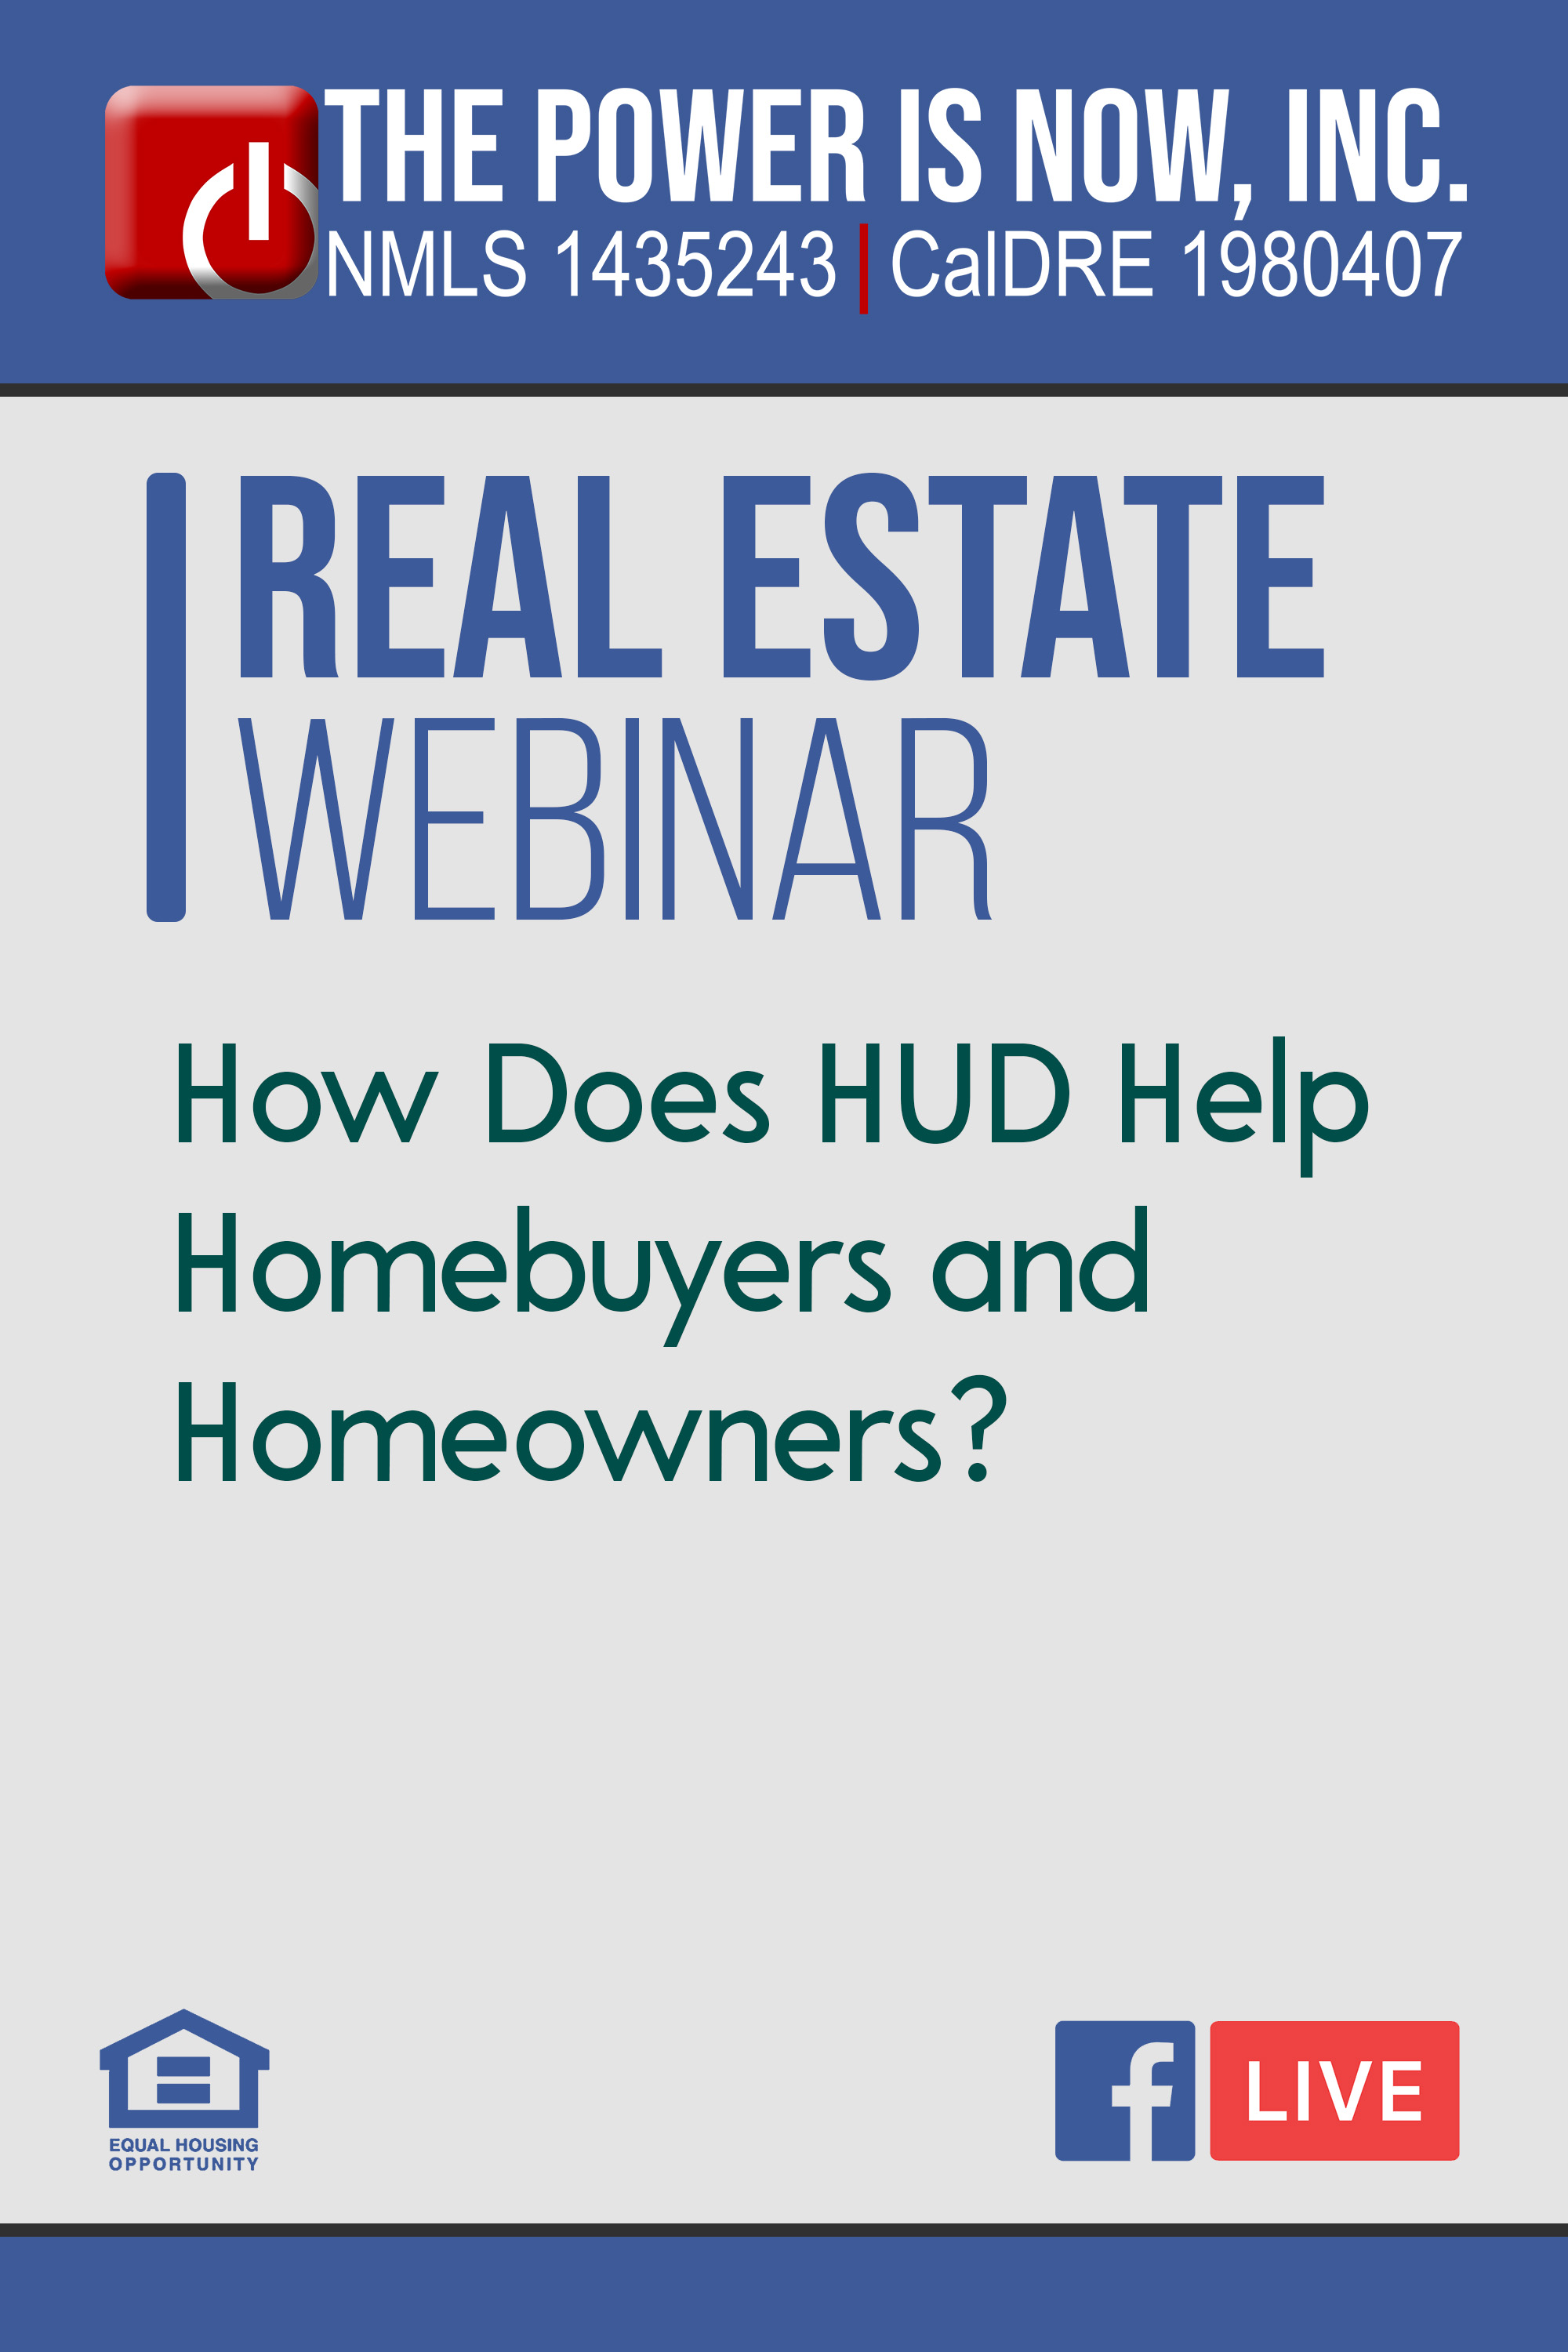 How Does HUD Help Homebuyer's and Homeowners?